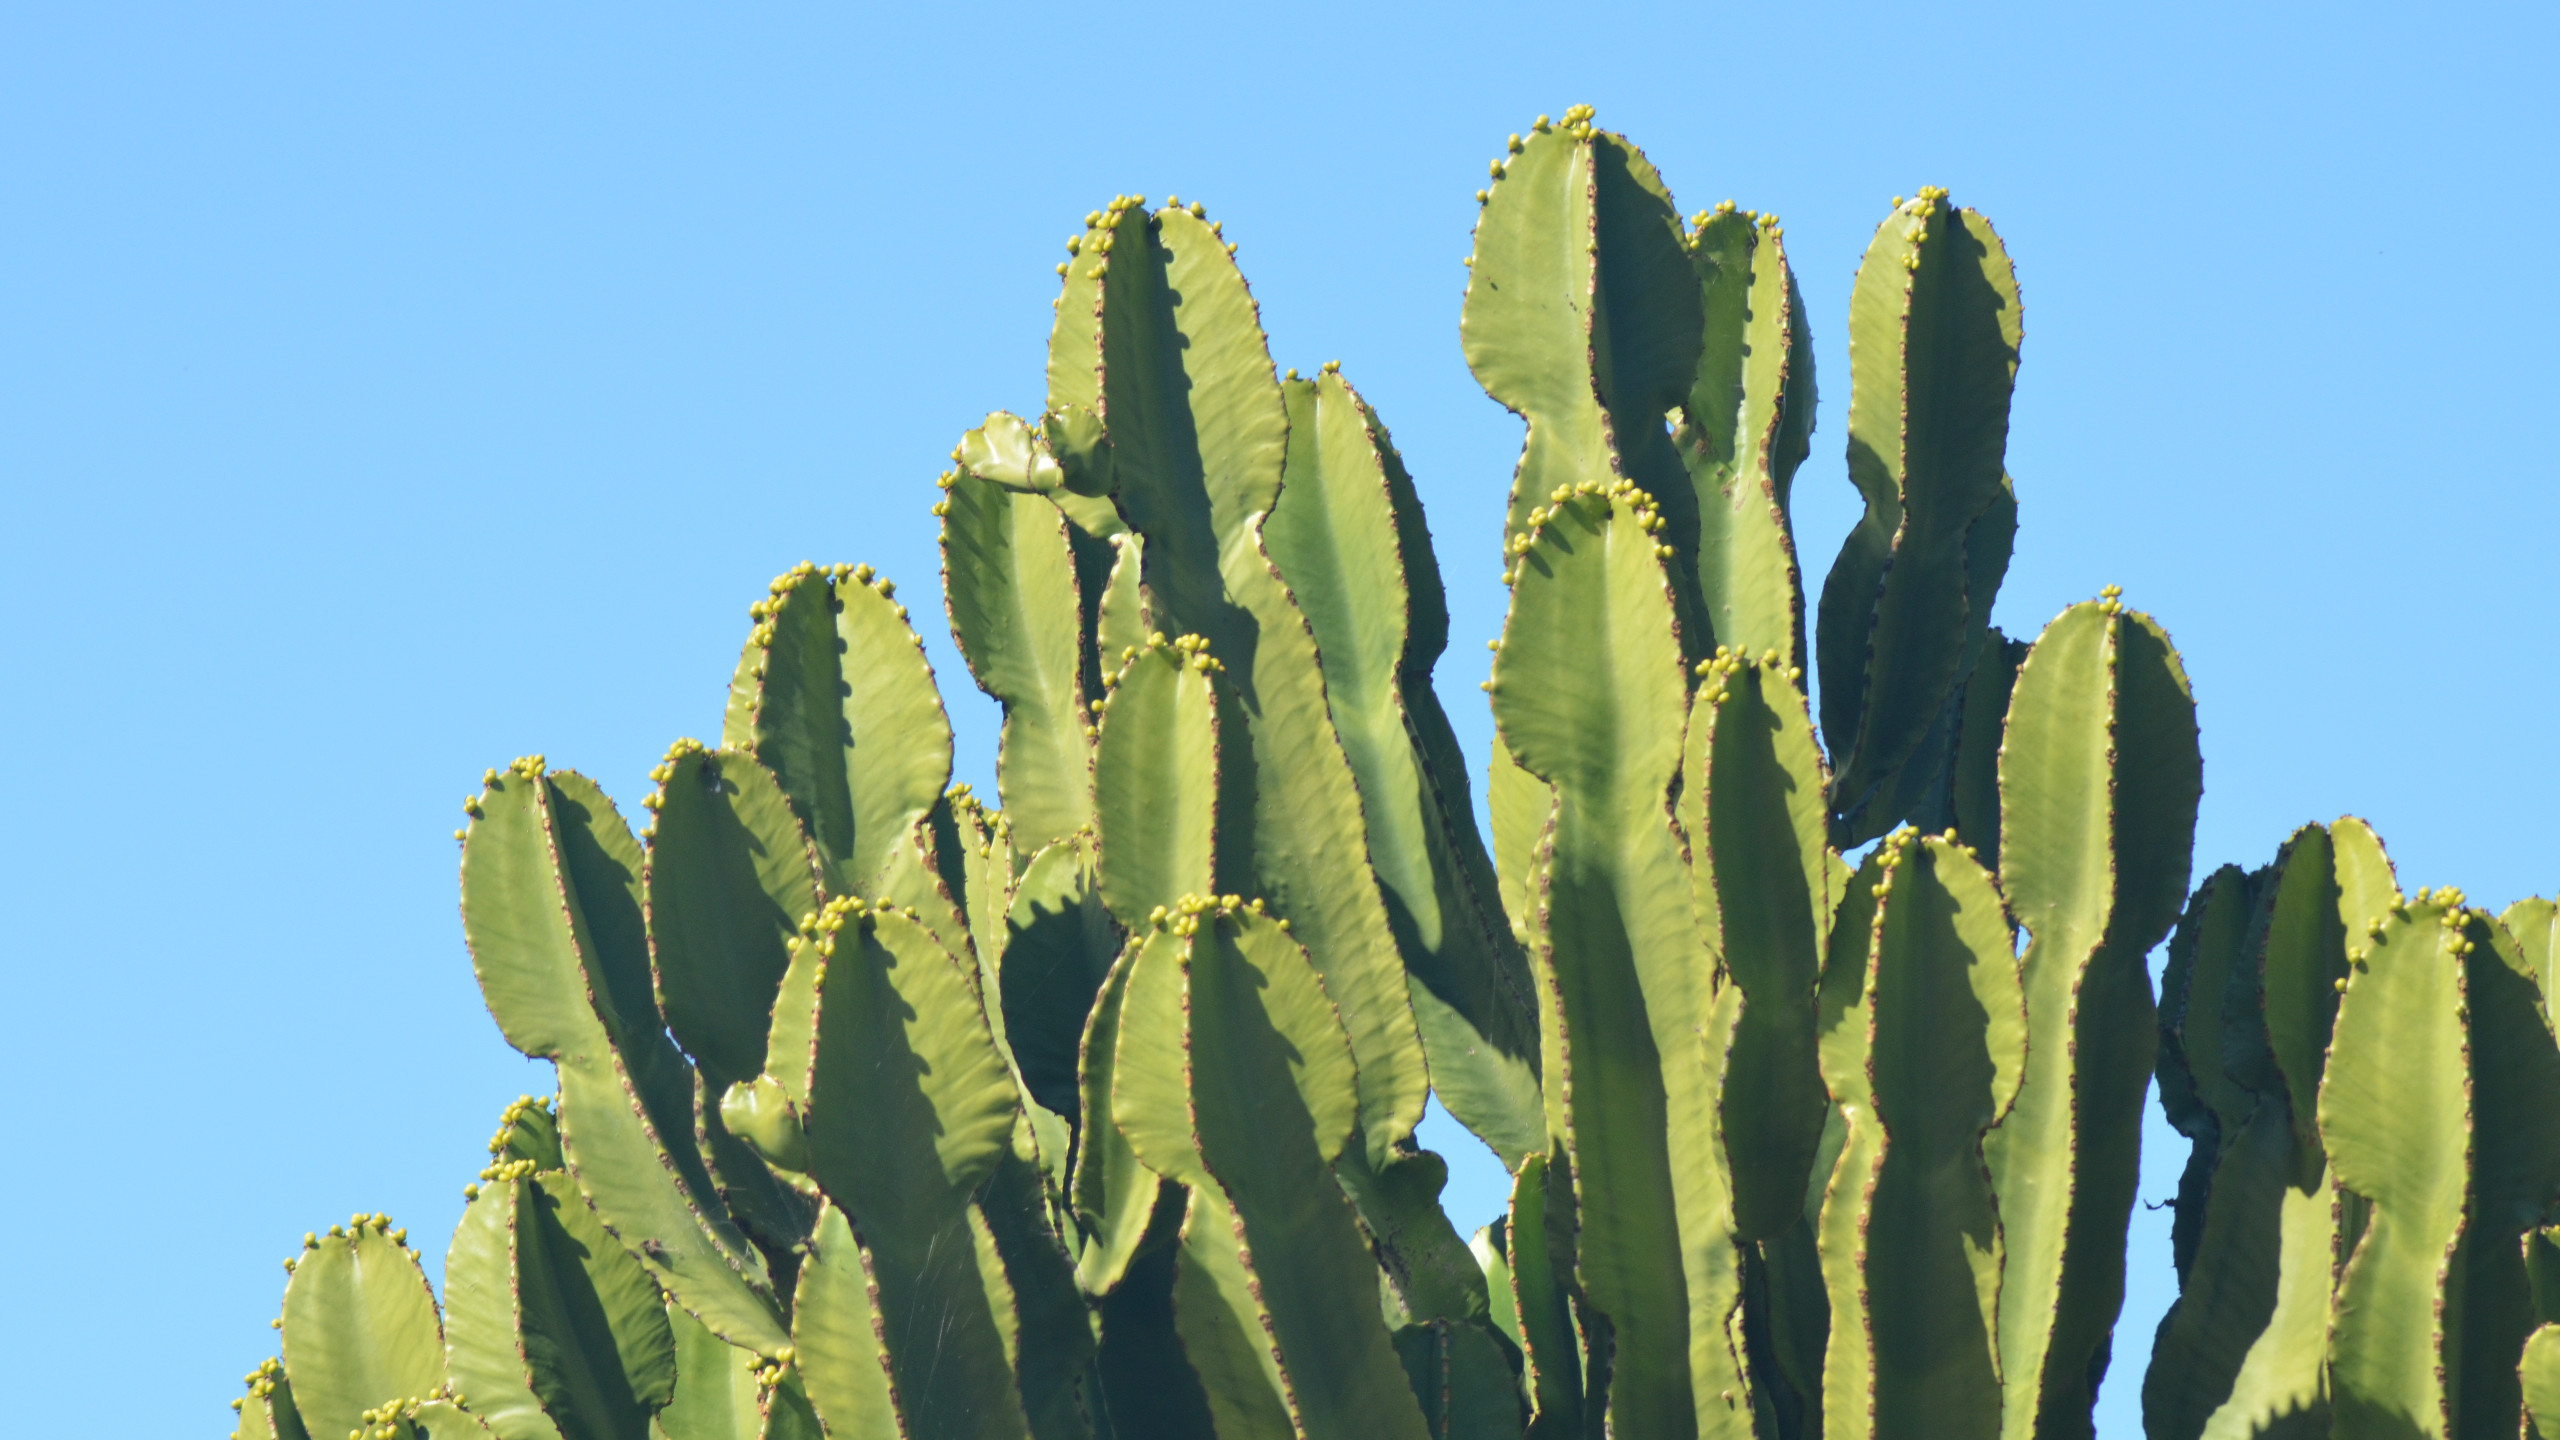 Res: 2560x1440, Cactus Images HD Wallpapers